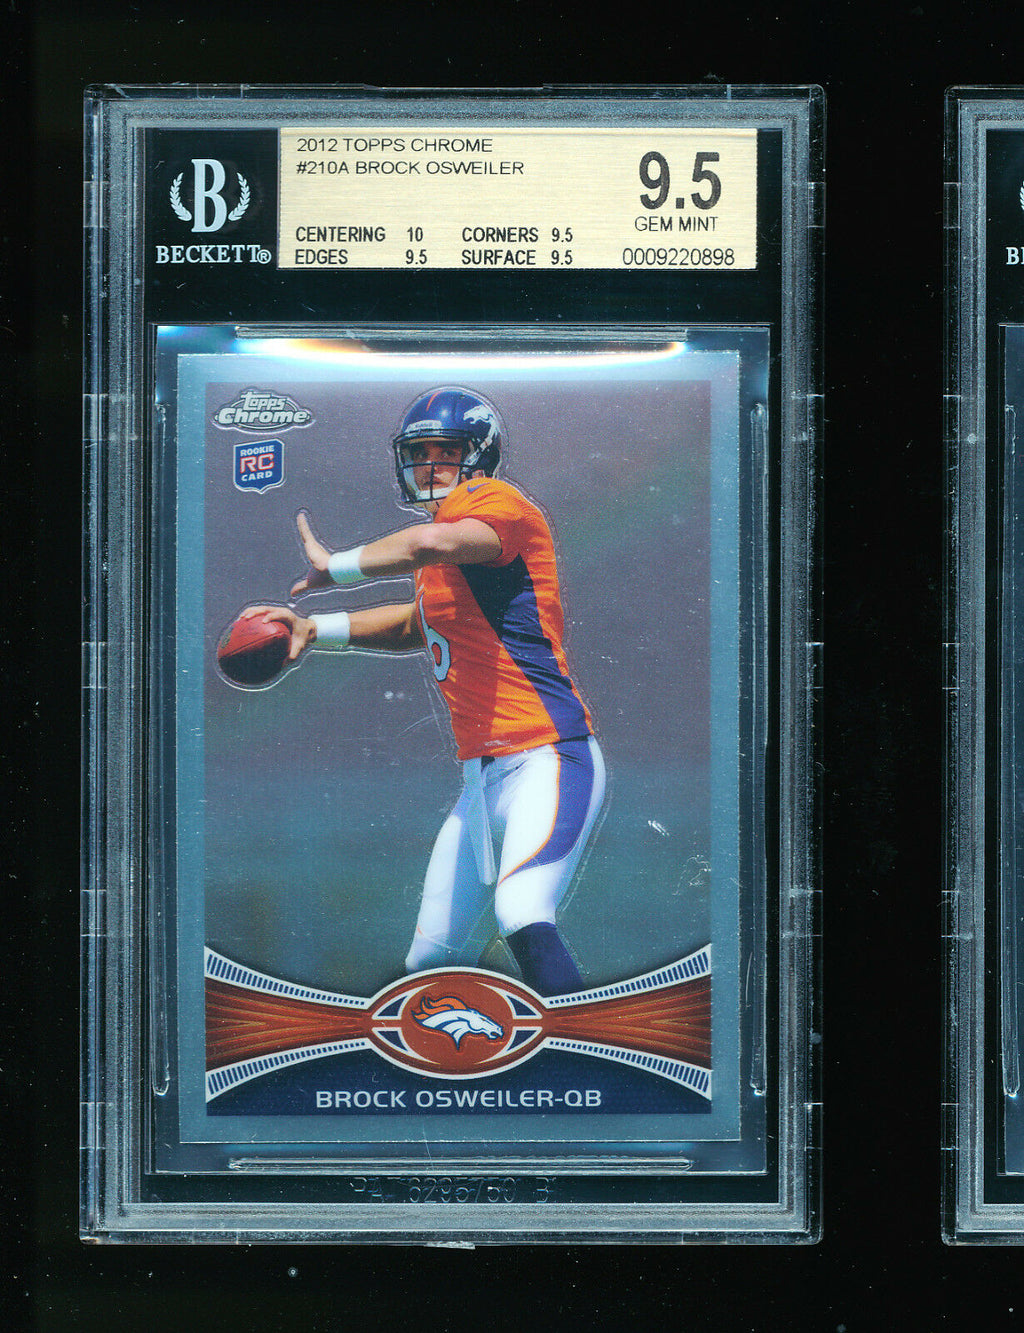 BGS 9.5 BROCK OSWEILER 2012 TOPPS CHROME RC ROOKIE CARD *HOUSTON TEXANS* GEM MT